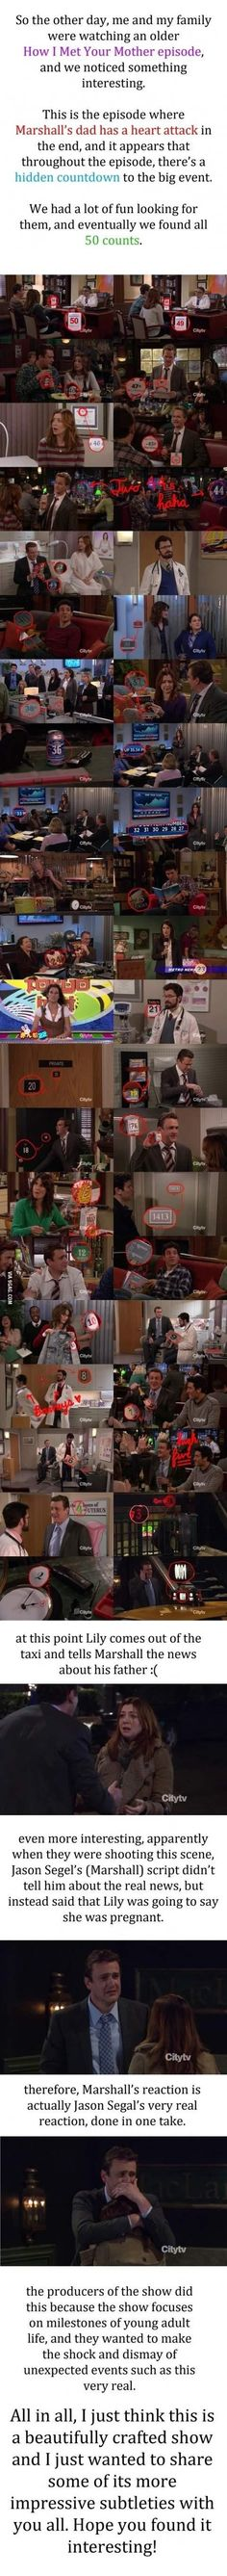 Hidden Countdown in 'How I Met Your Mother' - this is one of my favorite episodes. Jason Segal owned the final scene <3